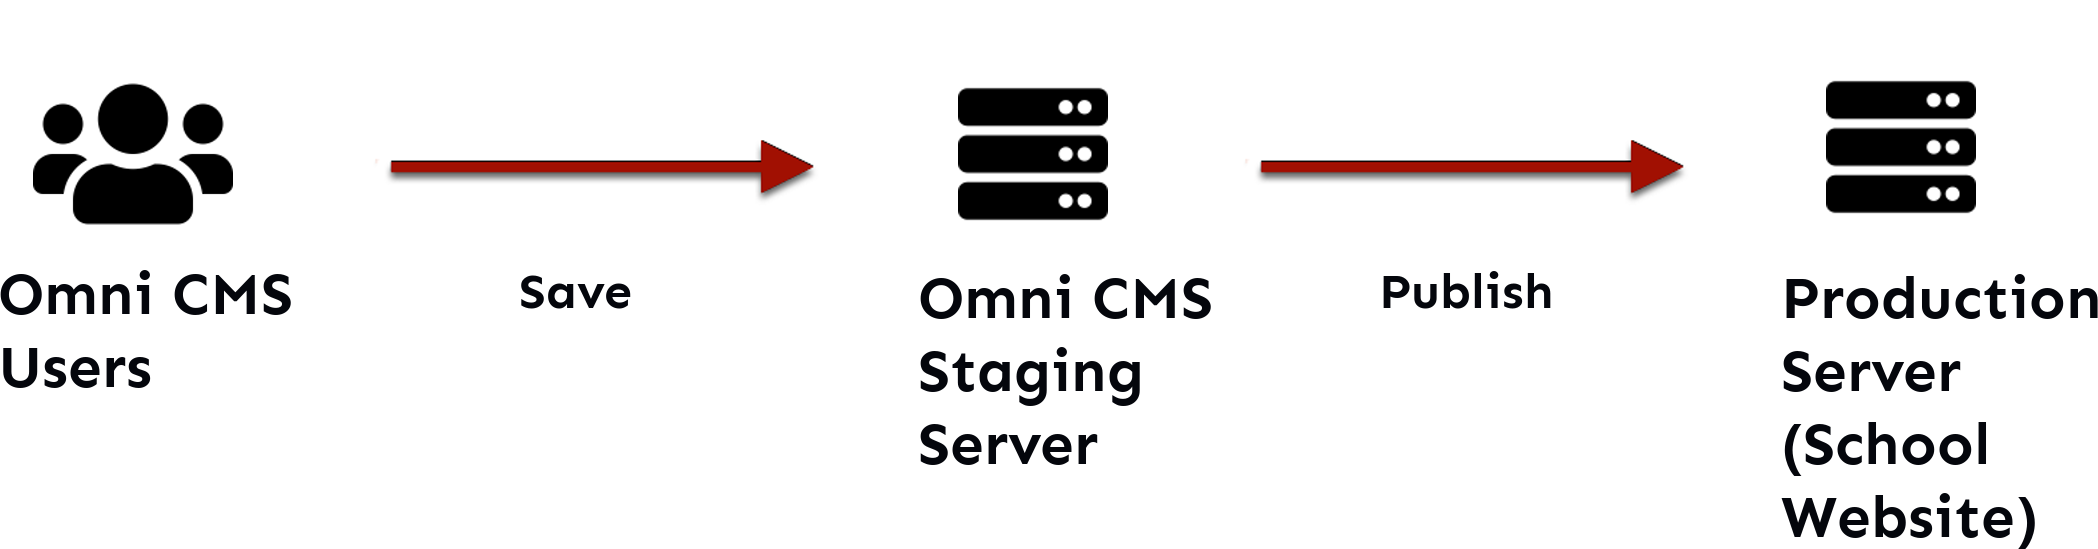 "A flow chart. The first step is blue users at computers, labeled ""CMS Users."" This leads to a computer labeled ""OU Campus (staging server)."" Then the text ""Publish"" leads to a gray computer labeled ""College Website (Production Server)"" which finally leads to gray computer users labeled ""Web Visitors."""